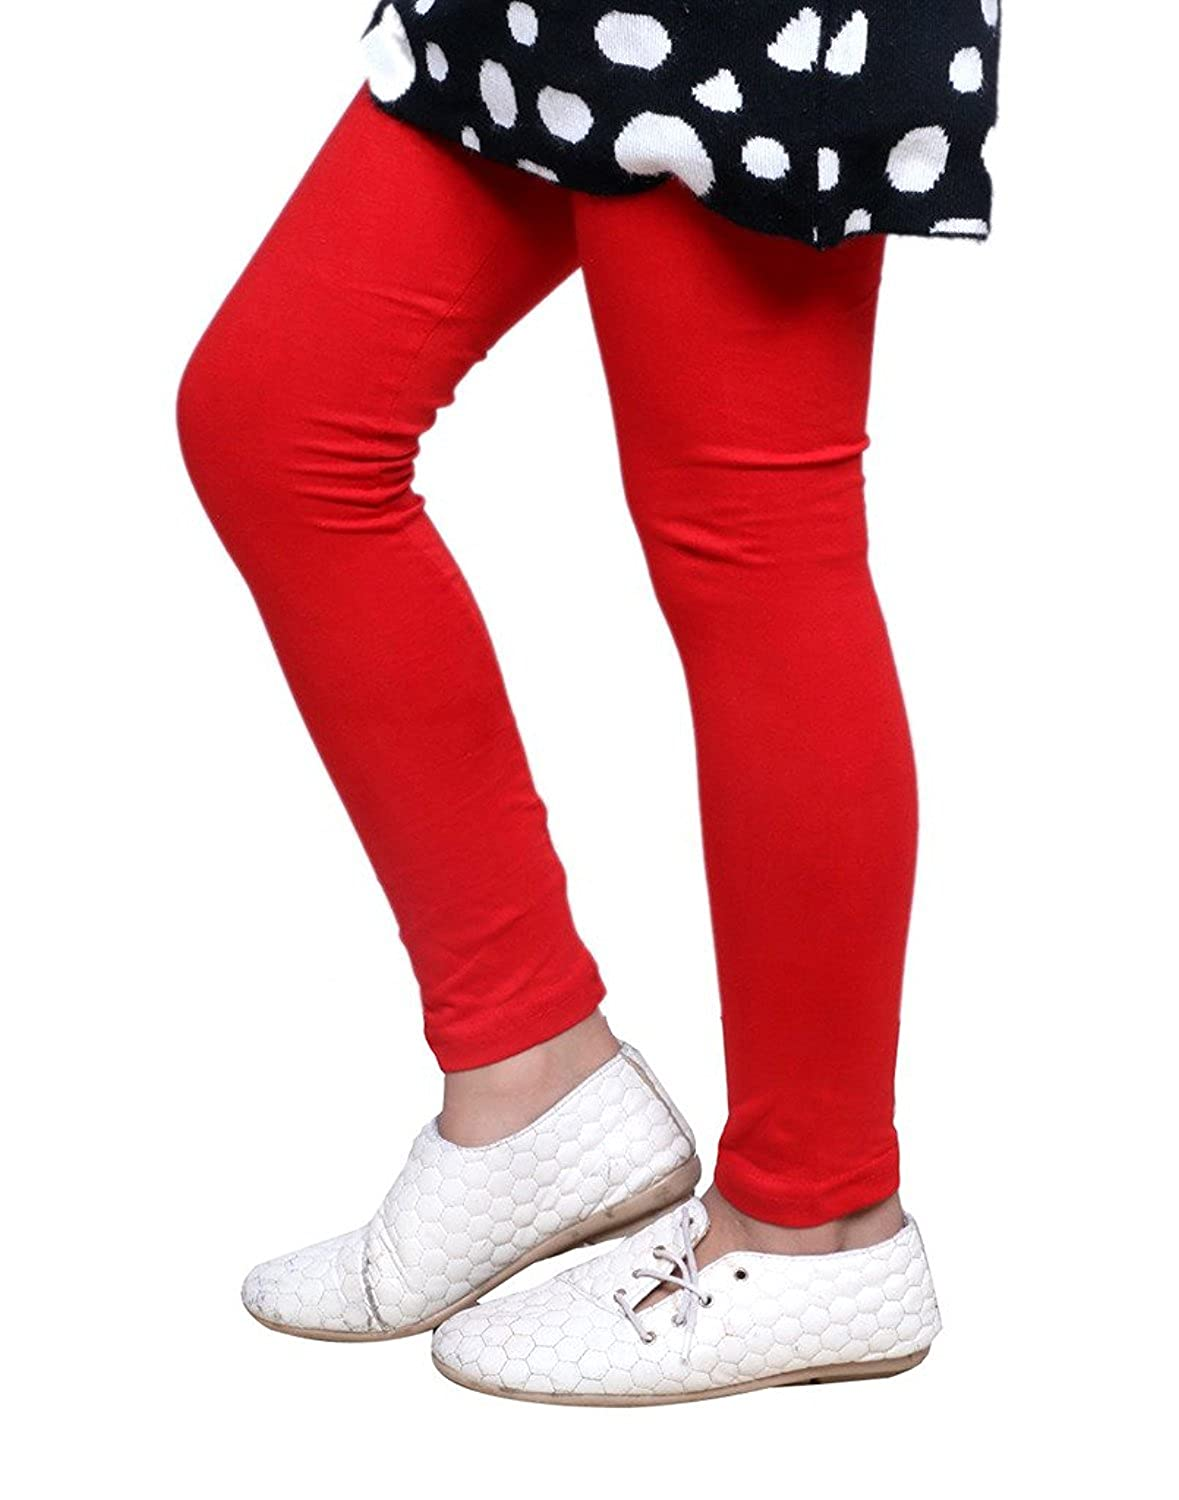 Indistar Girls 2 Cotton Solid Legging Pants Pack Of 4 /_Multicolor/_Size-3-5 Years/_71403041718-IW-P4-24 and 2 Cotton Printed Legging Pants